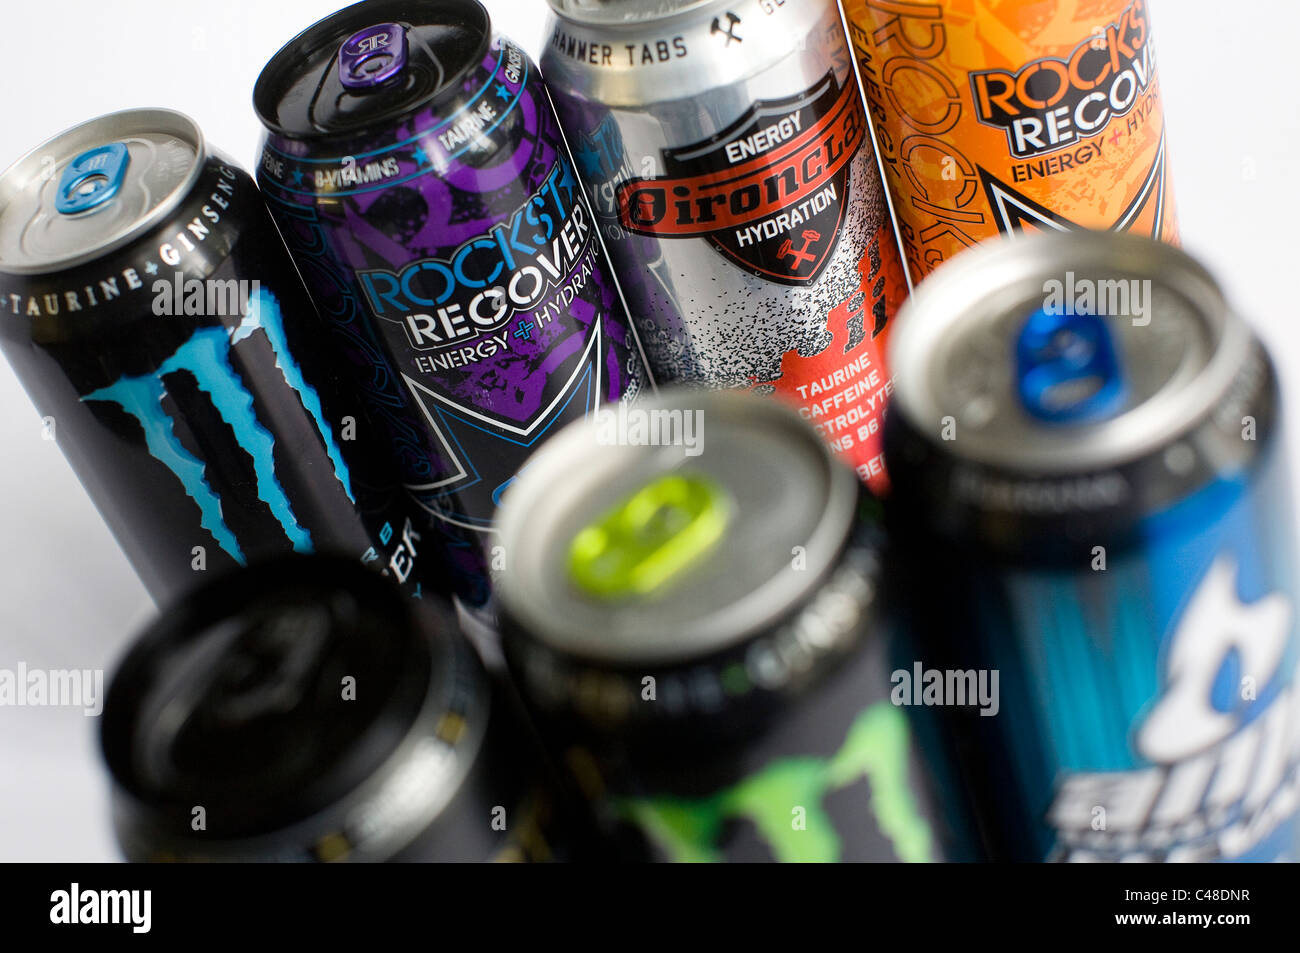 A mix os RockStar, Monster, AMP and Red Bull energy drinks.  Stock Photo